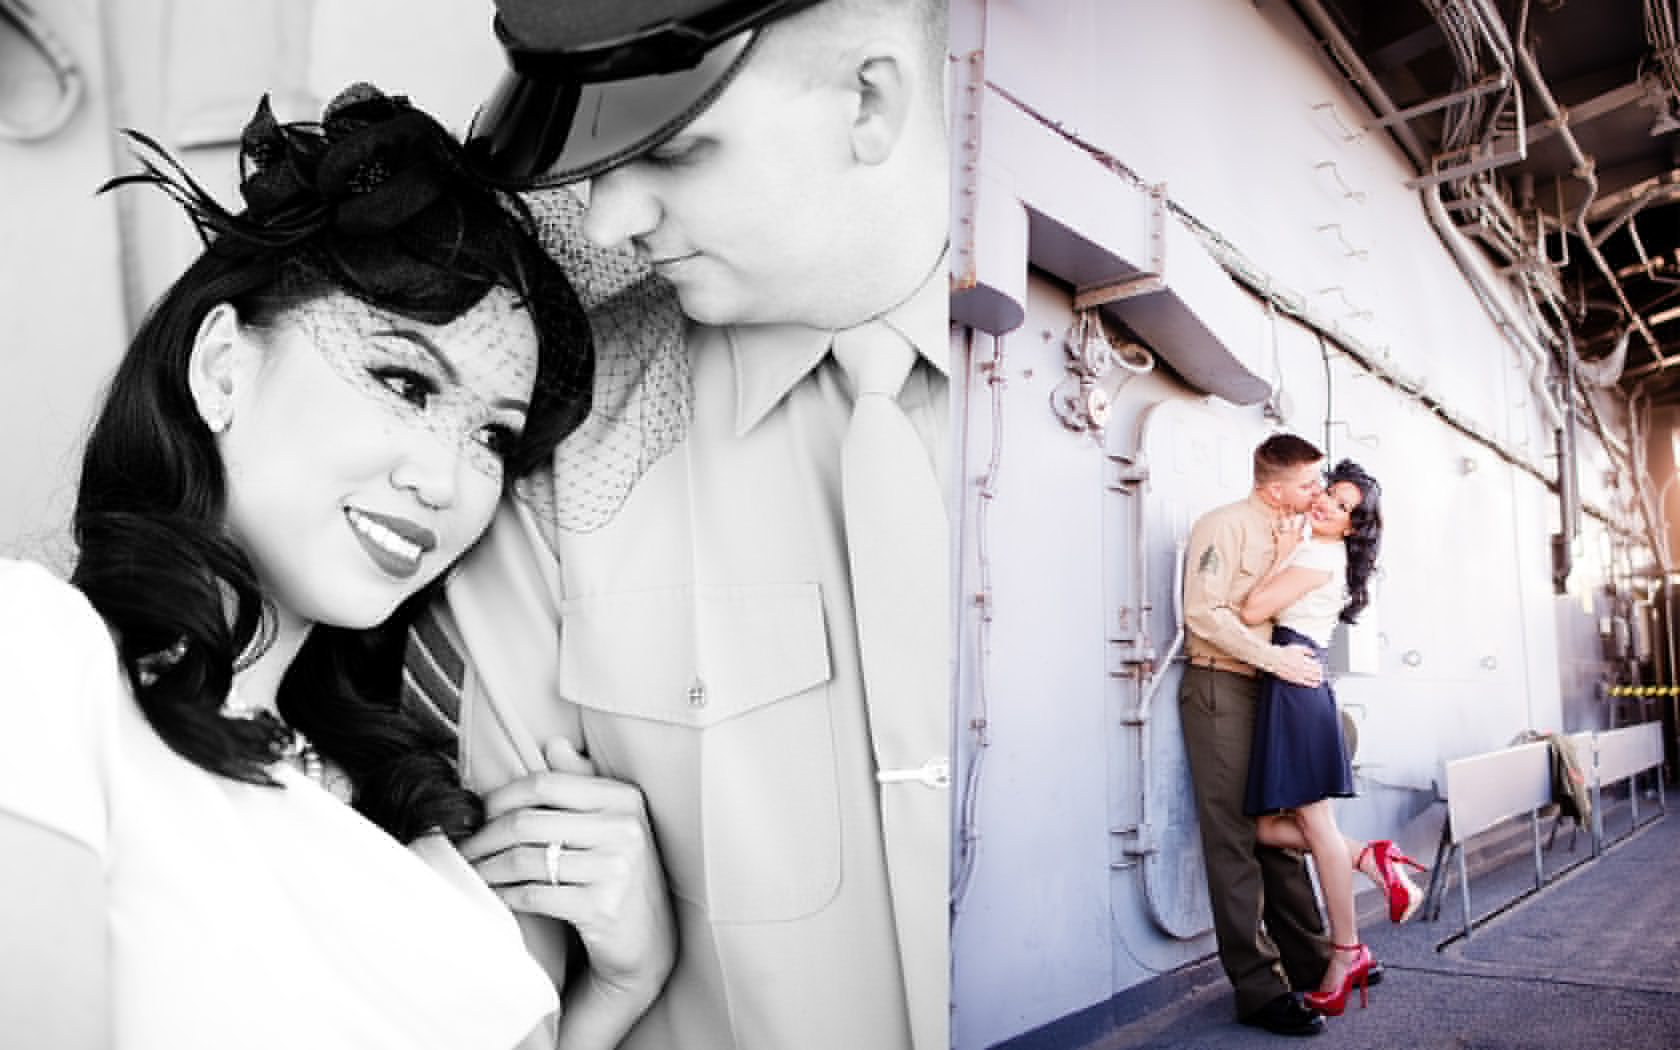 USS_Midway_Engagement_Session_31.jpg